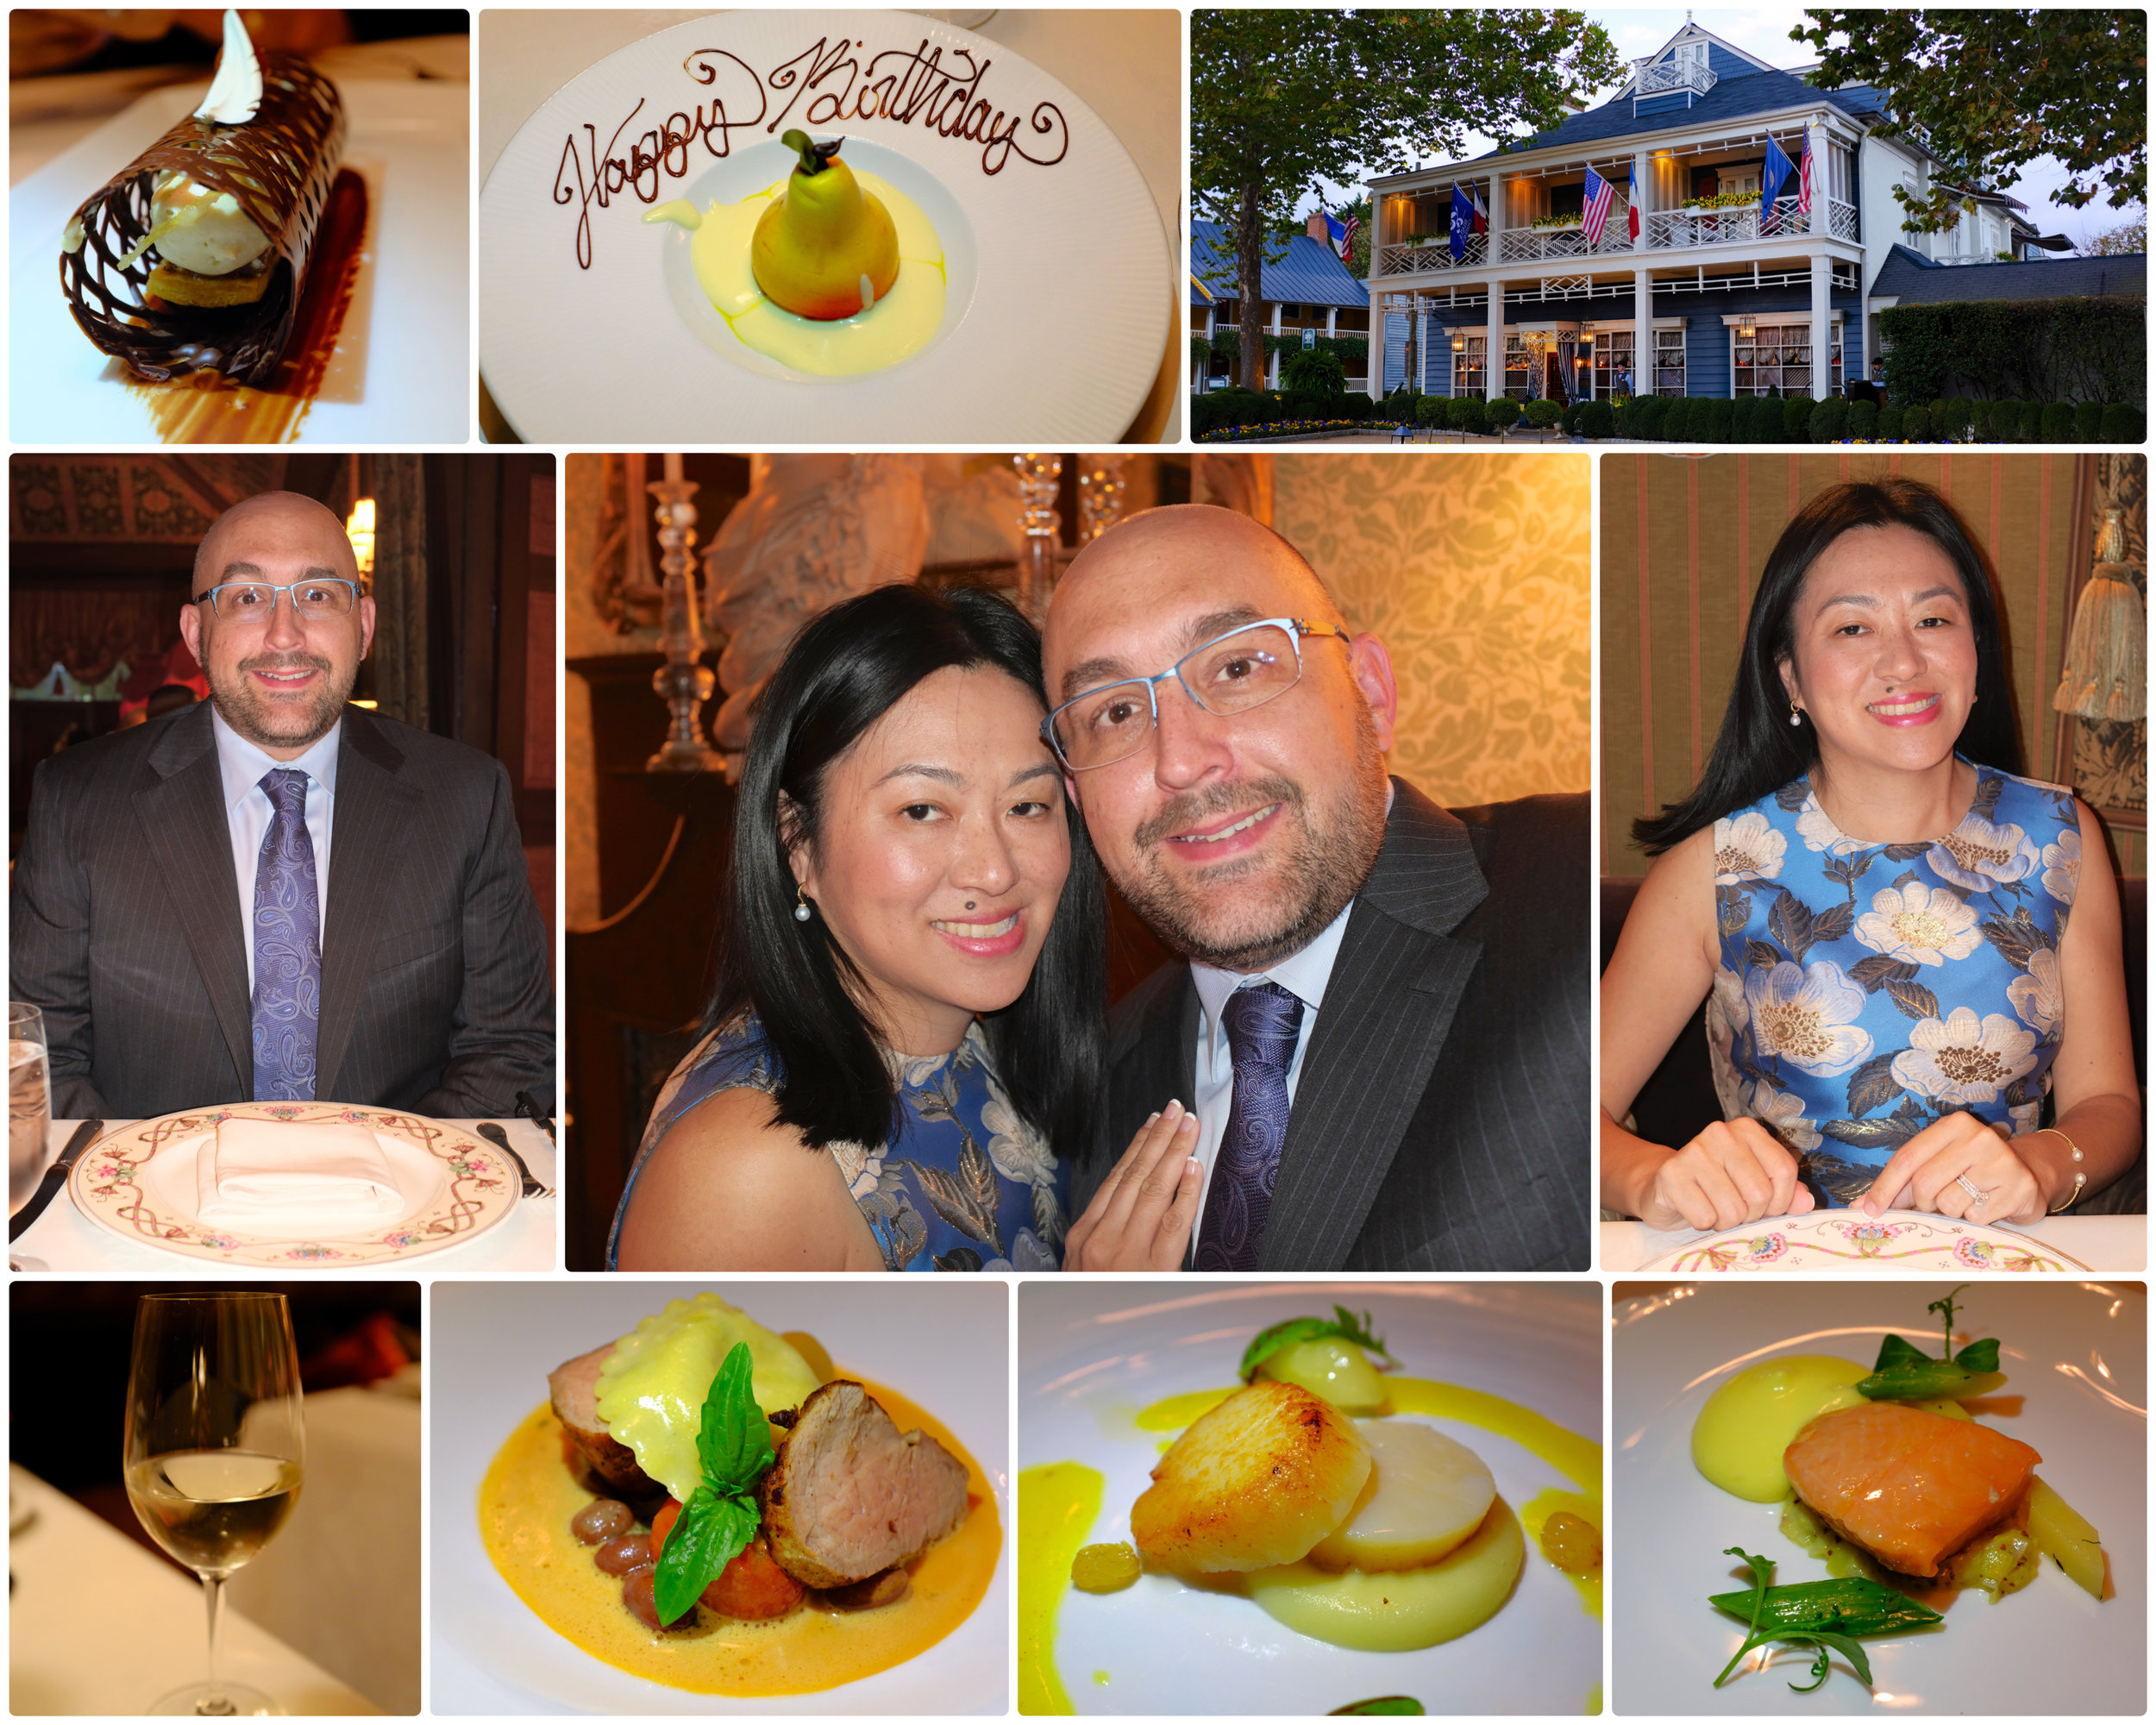 Our most recent trip to The Inn at Little Washington on October 27th, 2018 for my 41st birthday, and our first time at The Inn as a THREE Michelin Star establishment. Click the photo to go directly to the photo album.